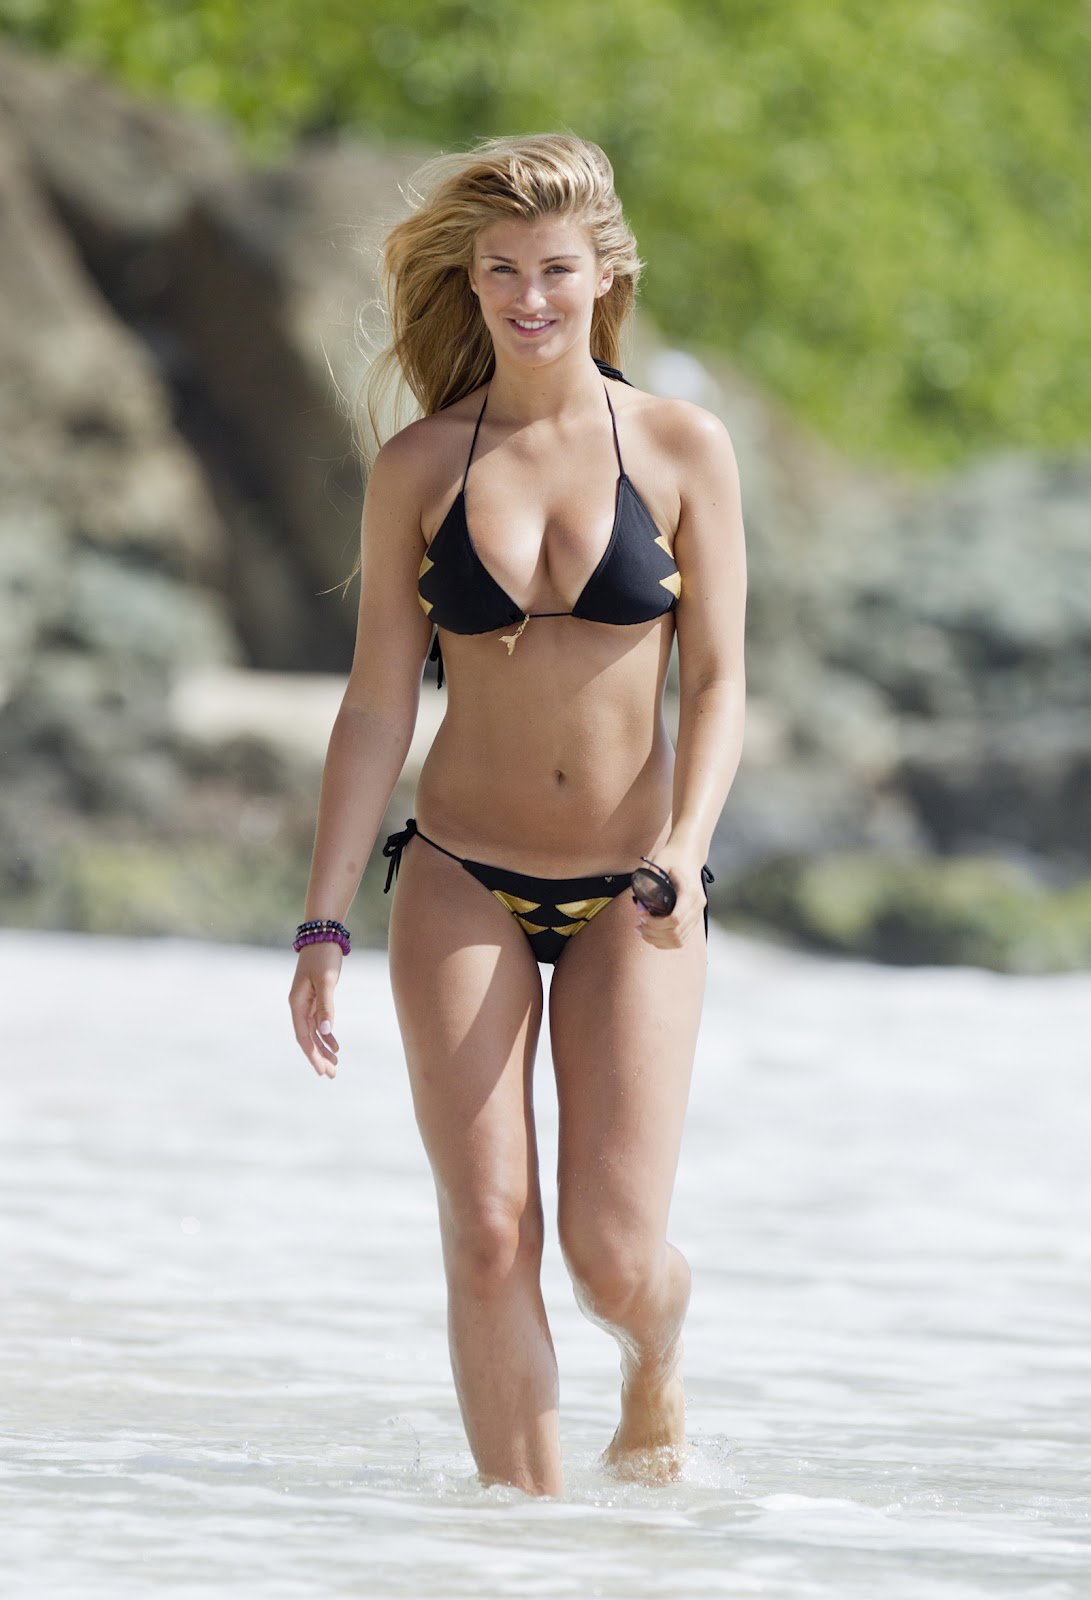 Willerton Amy Candid Bikini shots-Beautiful on the beach